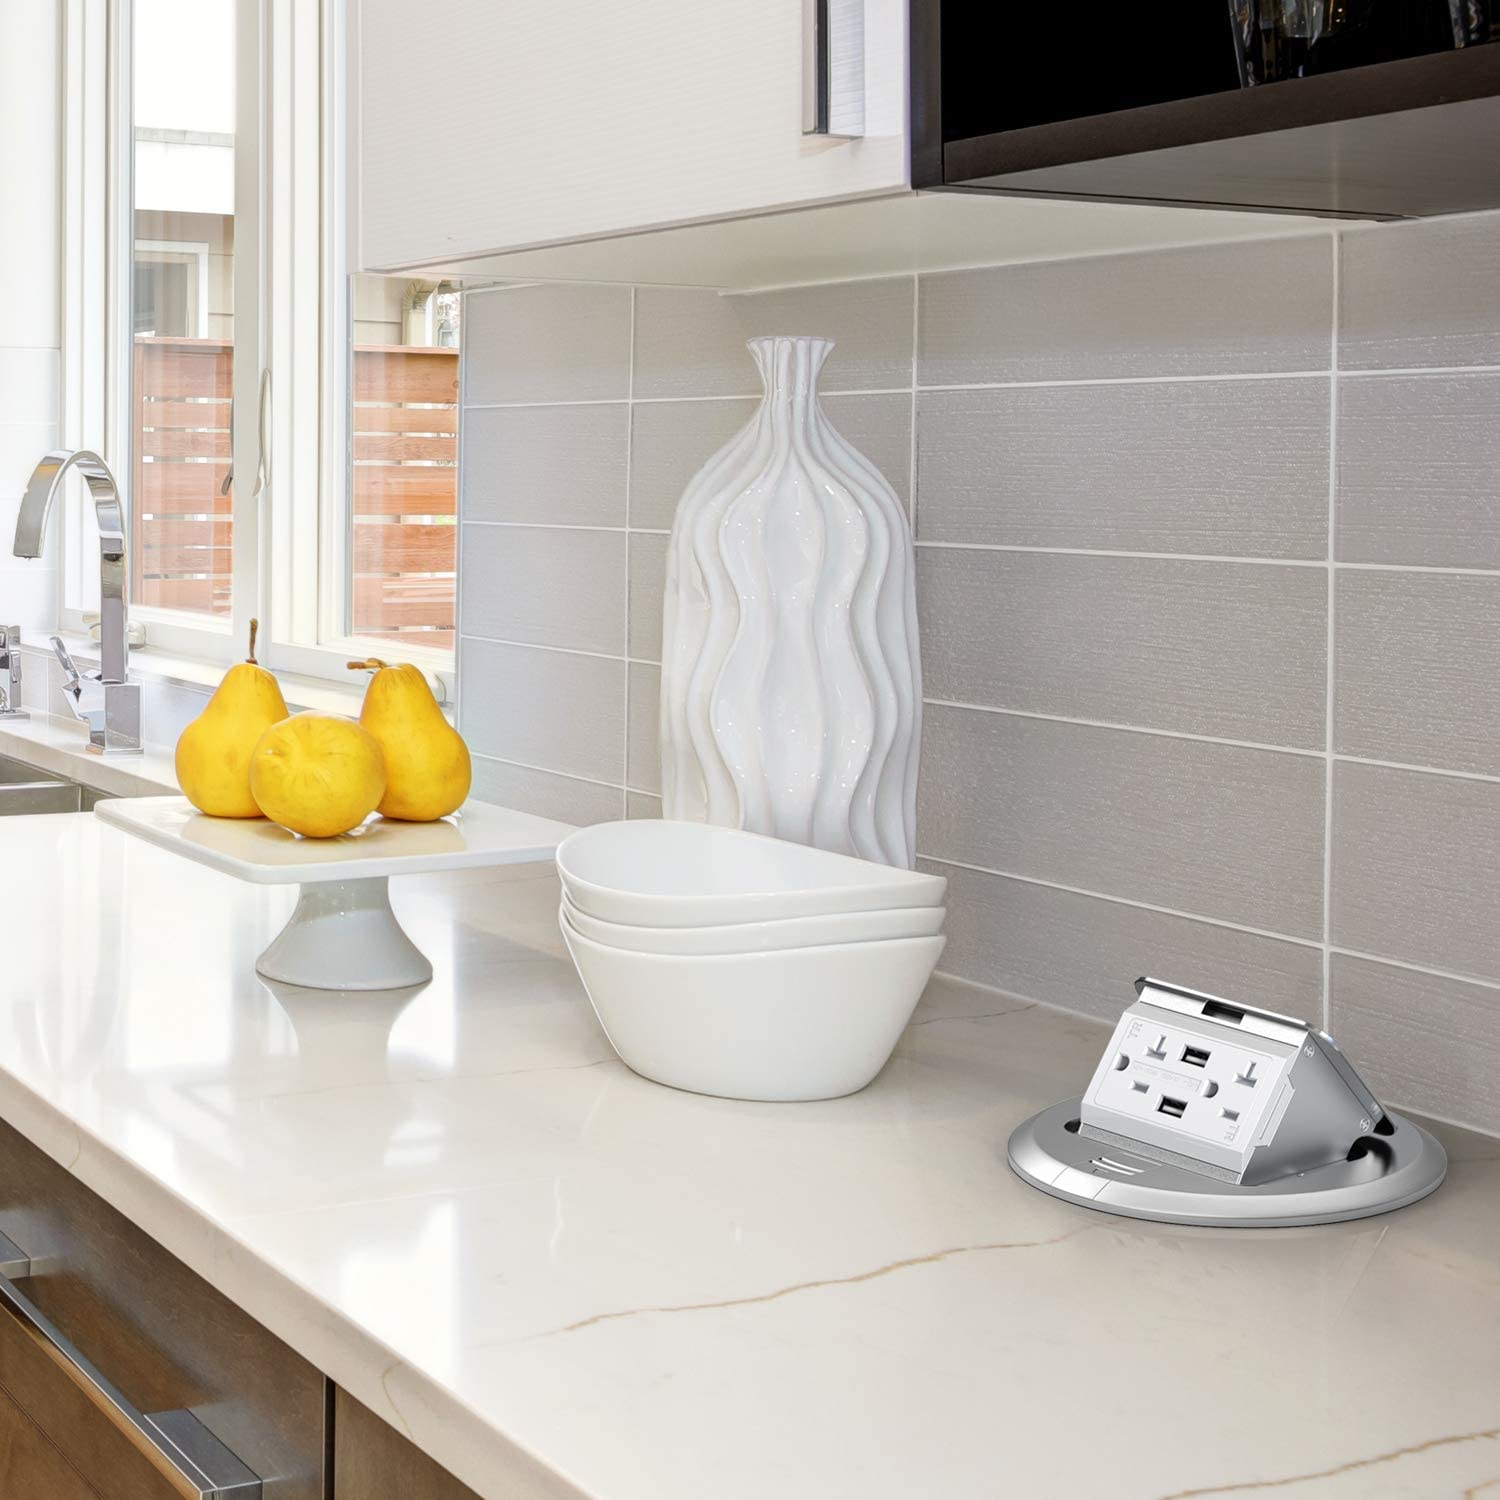 Buy WEBANG Round Pop Up Floor Outlet Covers Box with 9 Amp ...